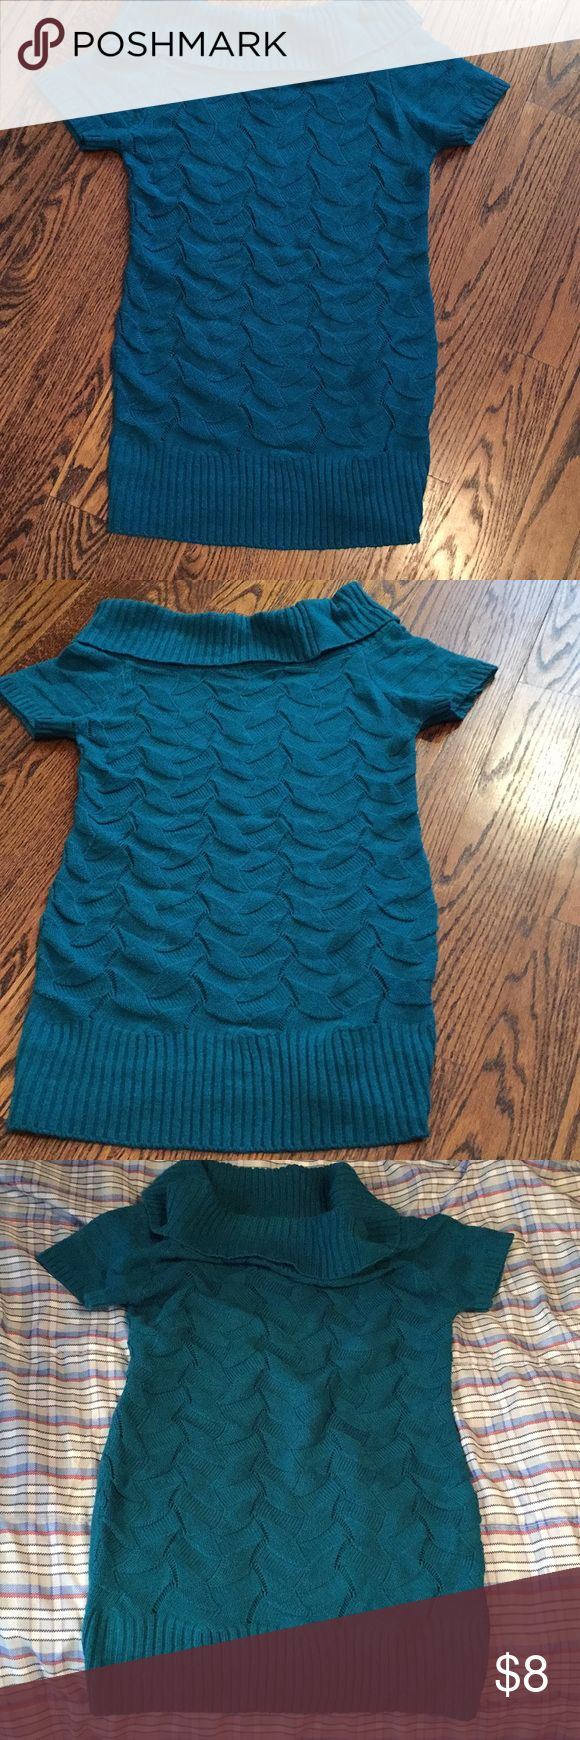 SHORT SLEEVED SWEATER/TUNIC Beautiful blue-teal green color Tags says size Large from Deb shop but I say it's a m-l depending on how you want to wear it Deb Dresses Mini